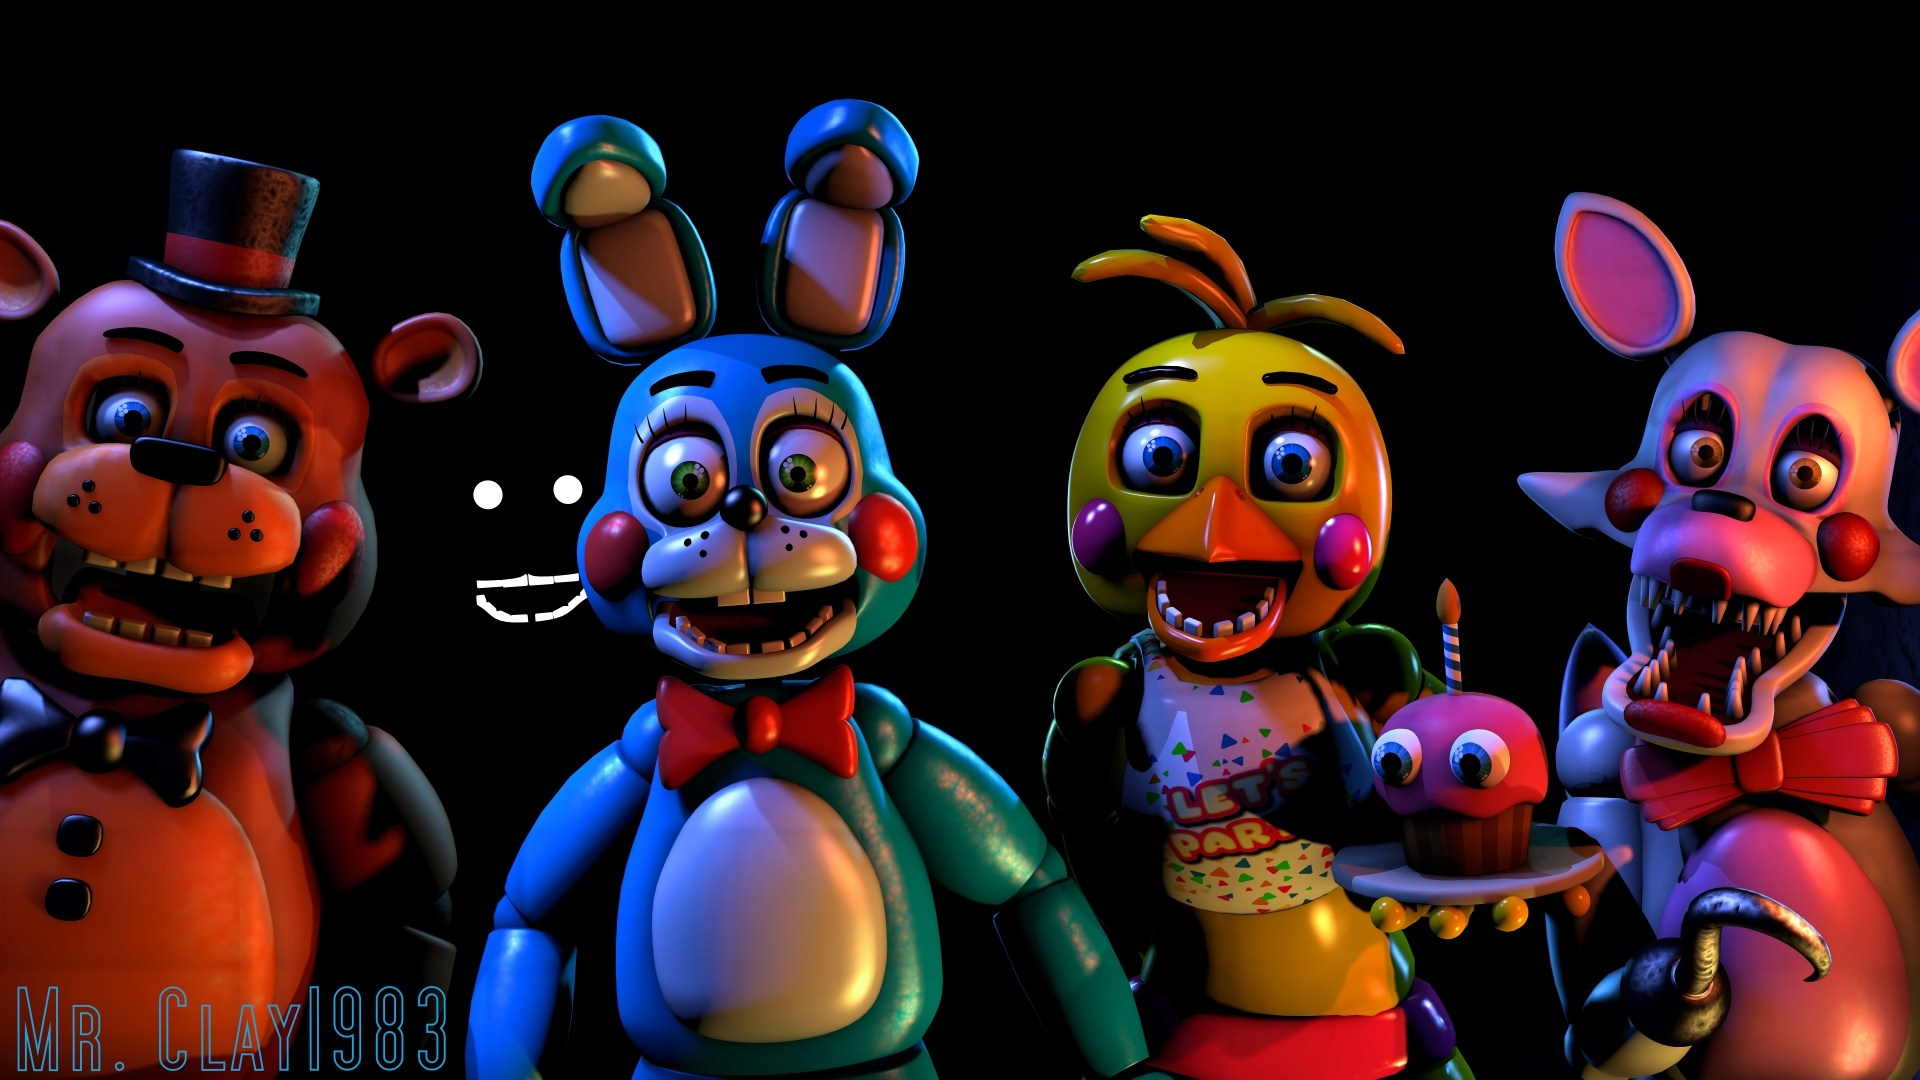 Wallpapers Id Five Nights At Freddy S 66244 Hd Wallpaper